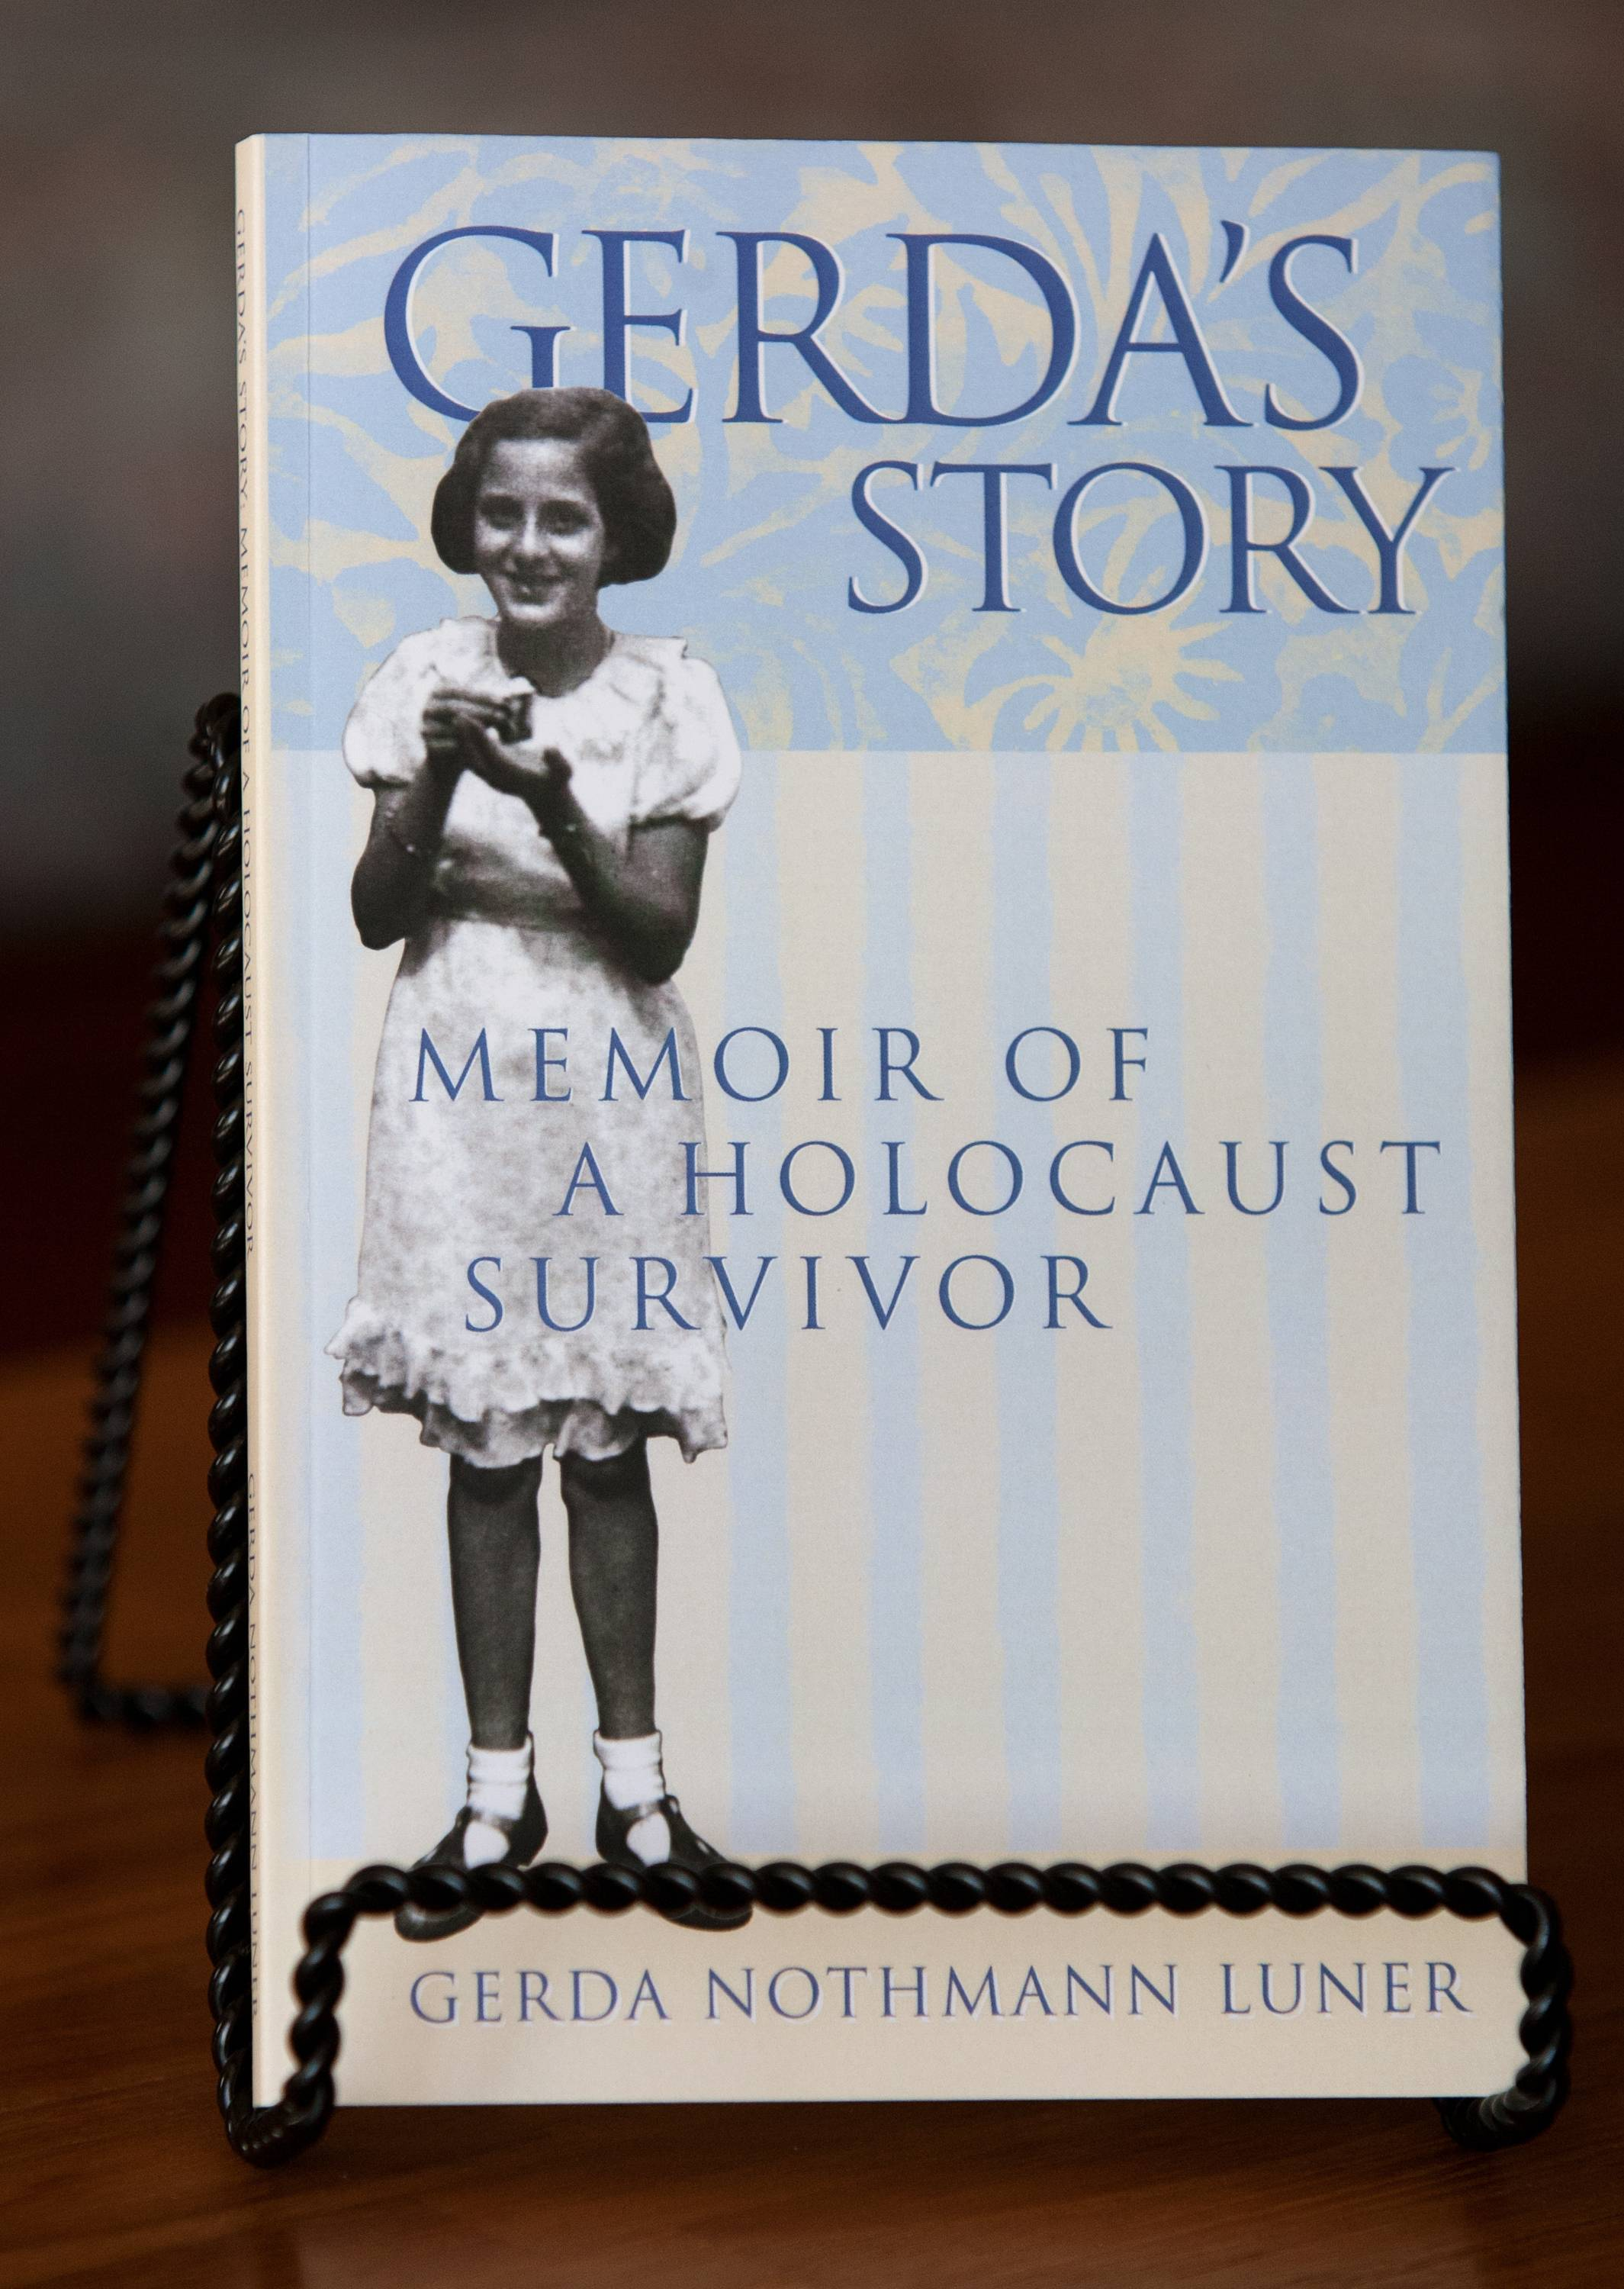 Using his late wife's memoirs and collection of letters, Charles Luner succeeded in bringing Gerda Nothmann Luner's survival story to print.